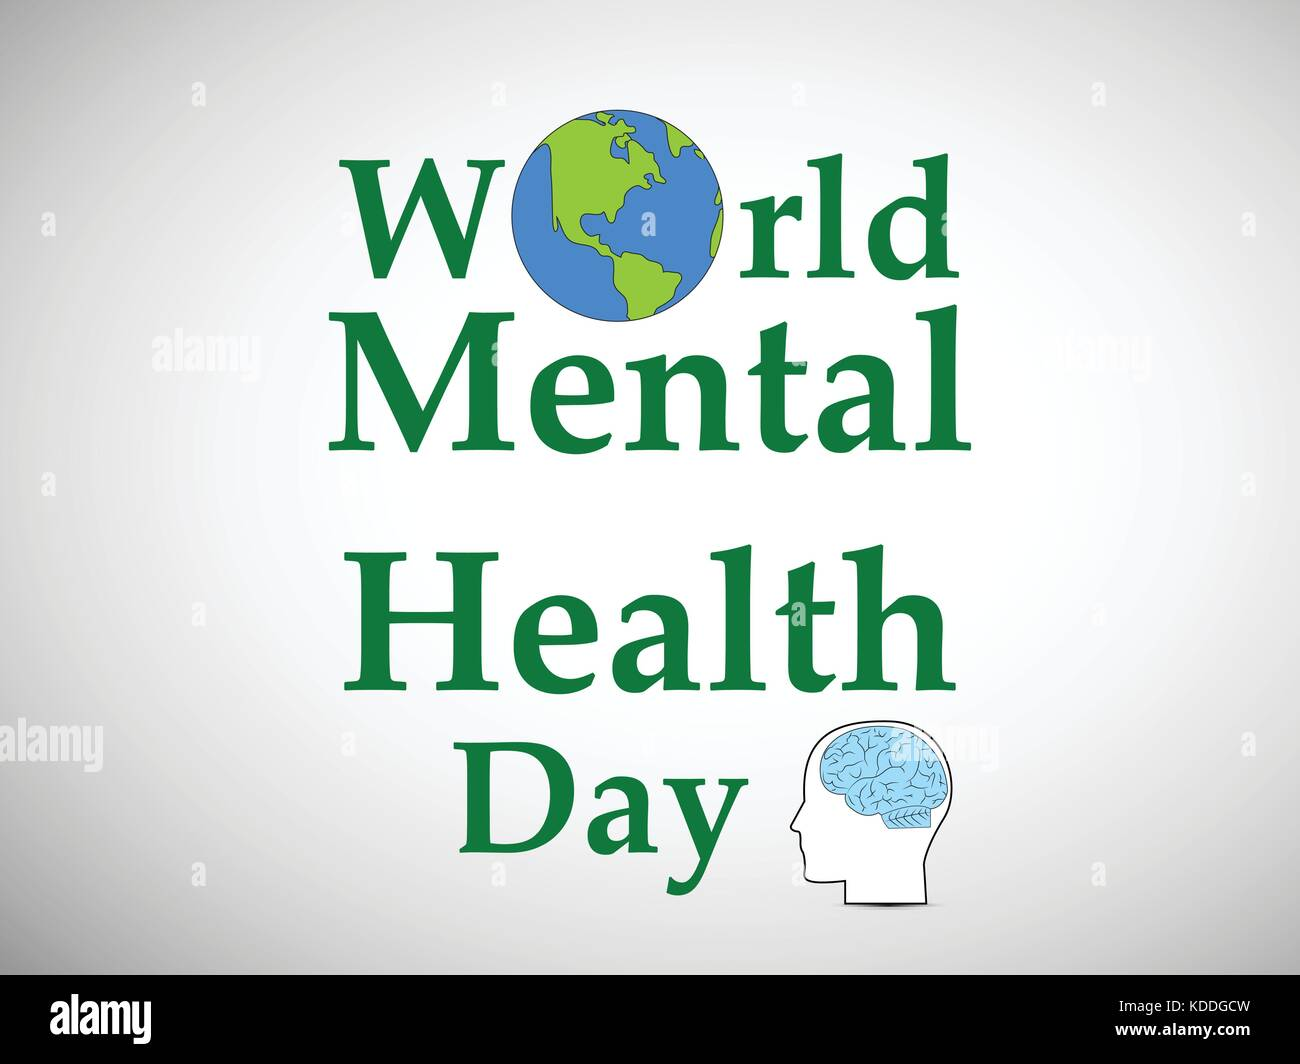 world mental health day - photo #21